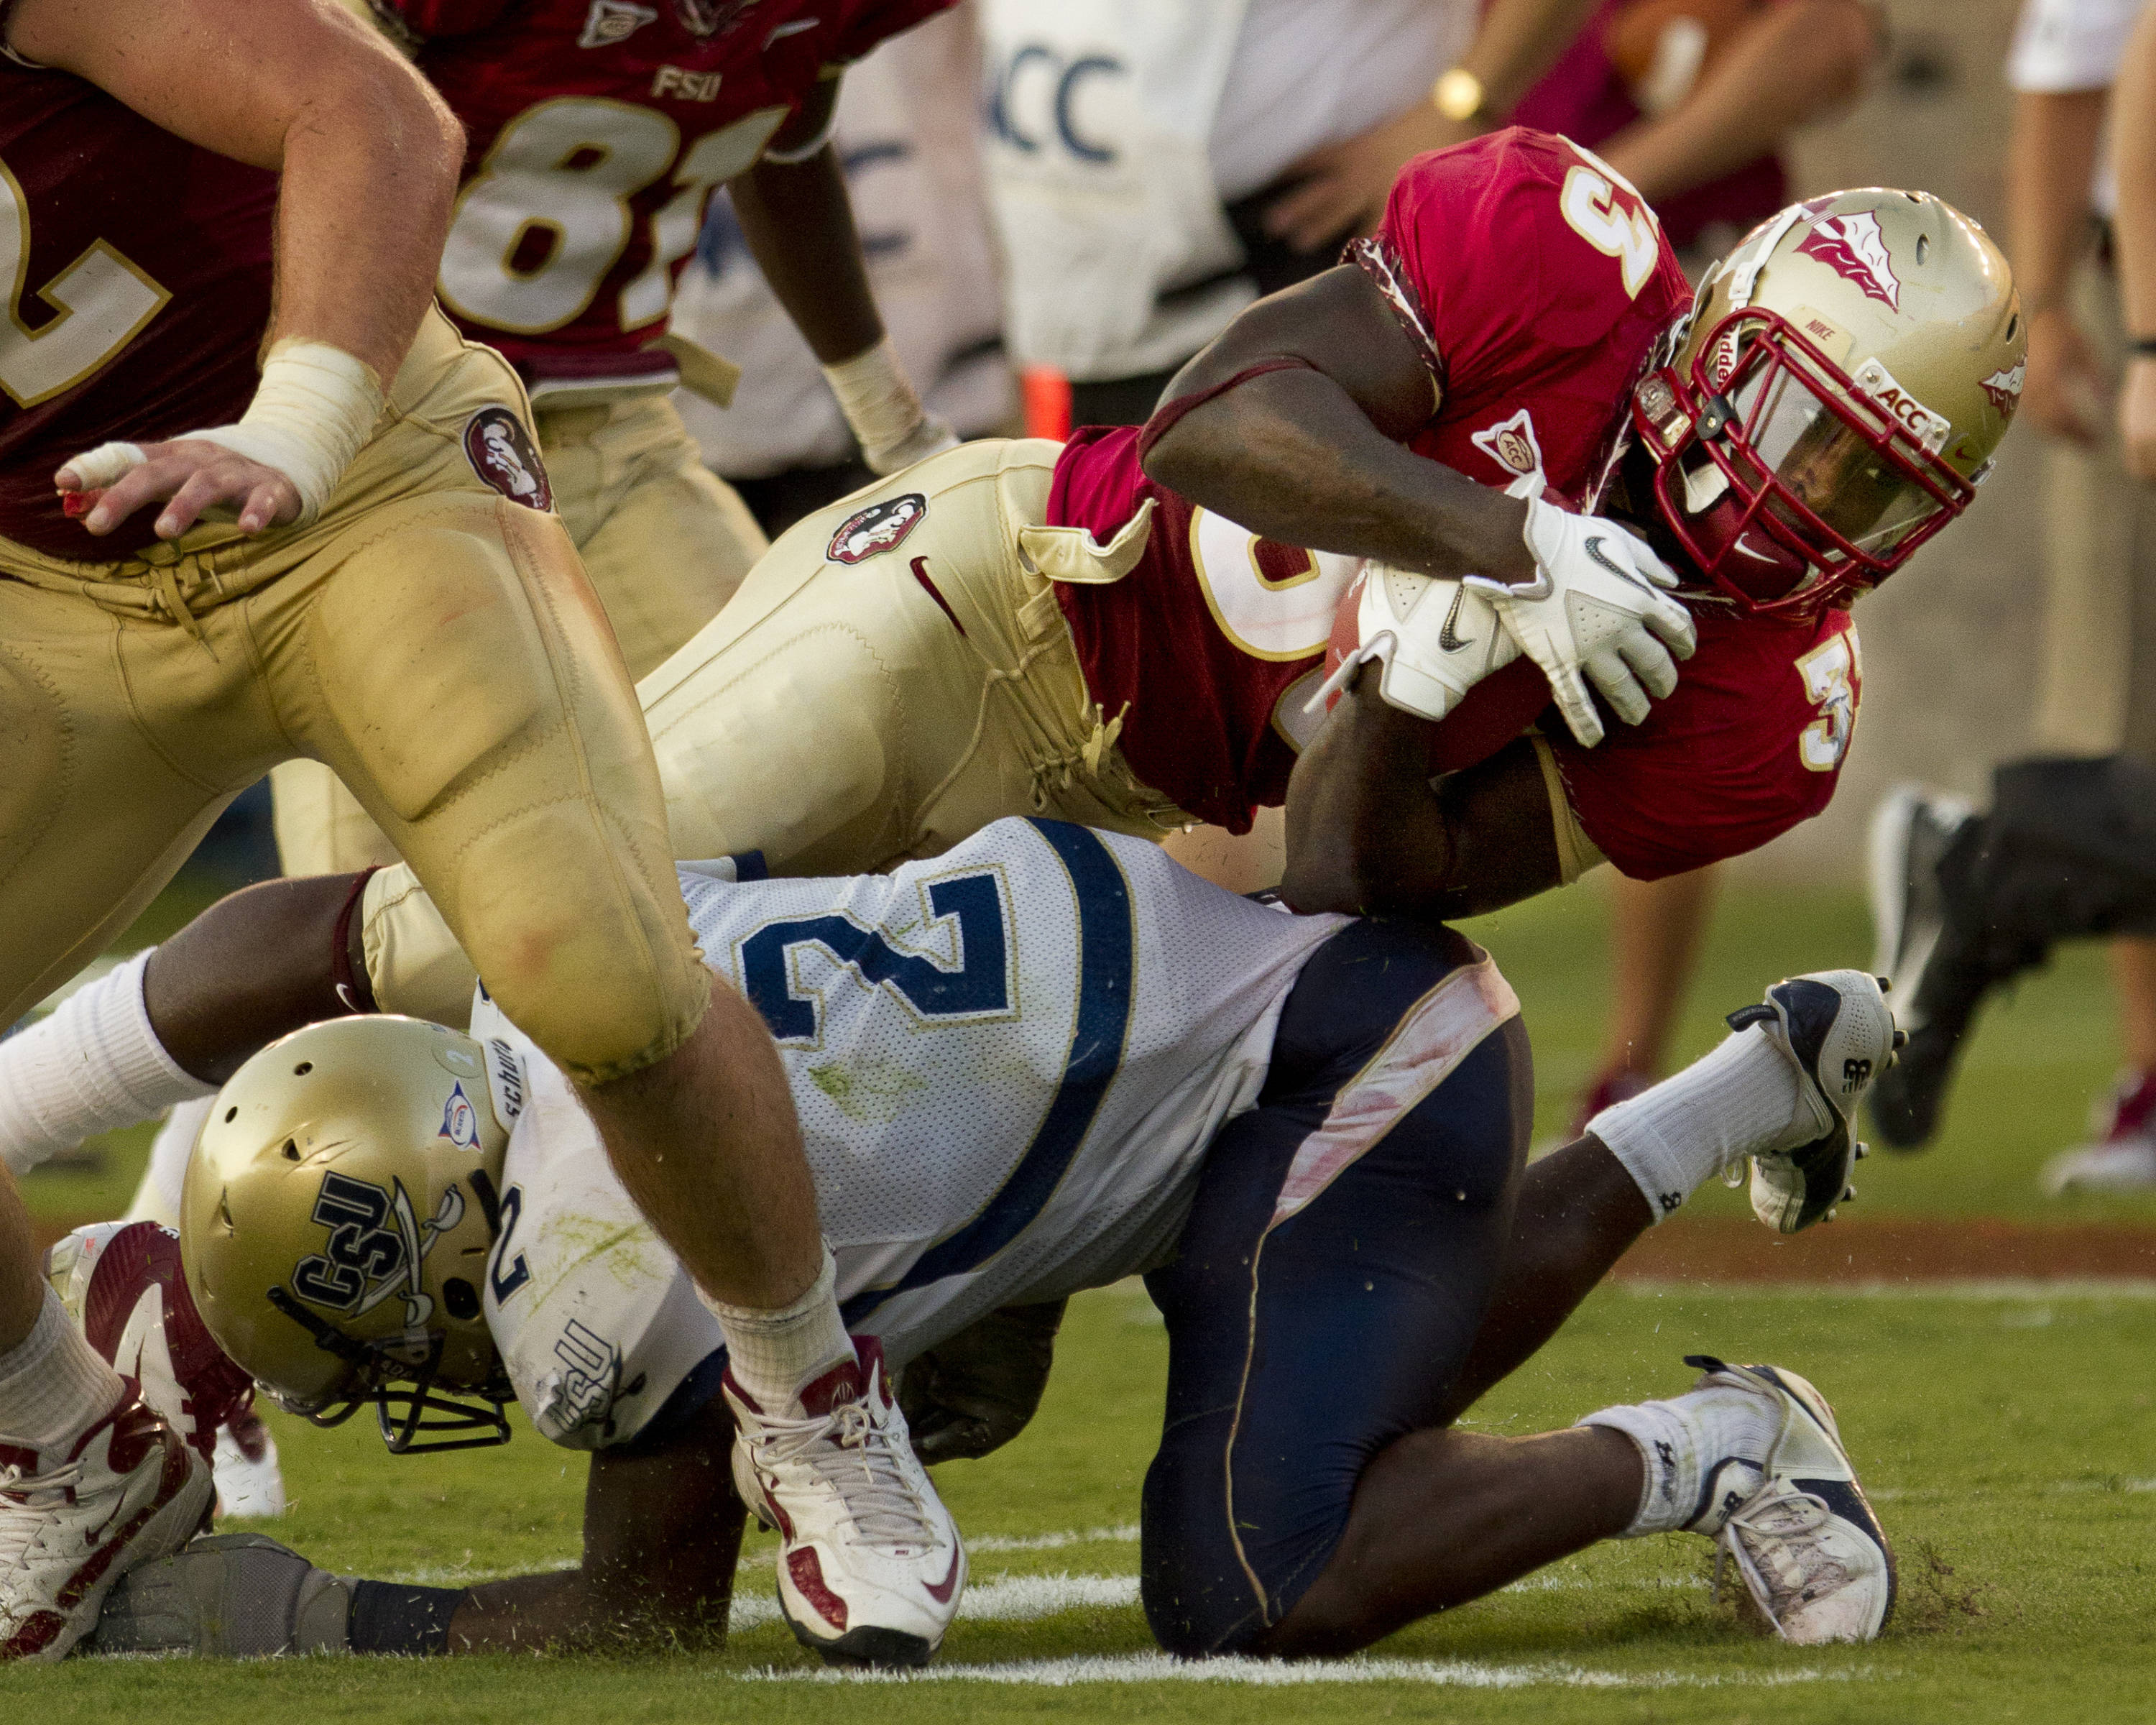 Ty Jones (33) carries the ball downfield during the game against CSU on September 10, 2011.